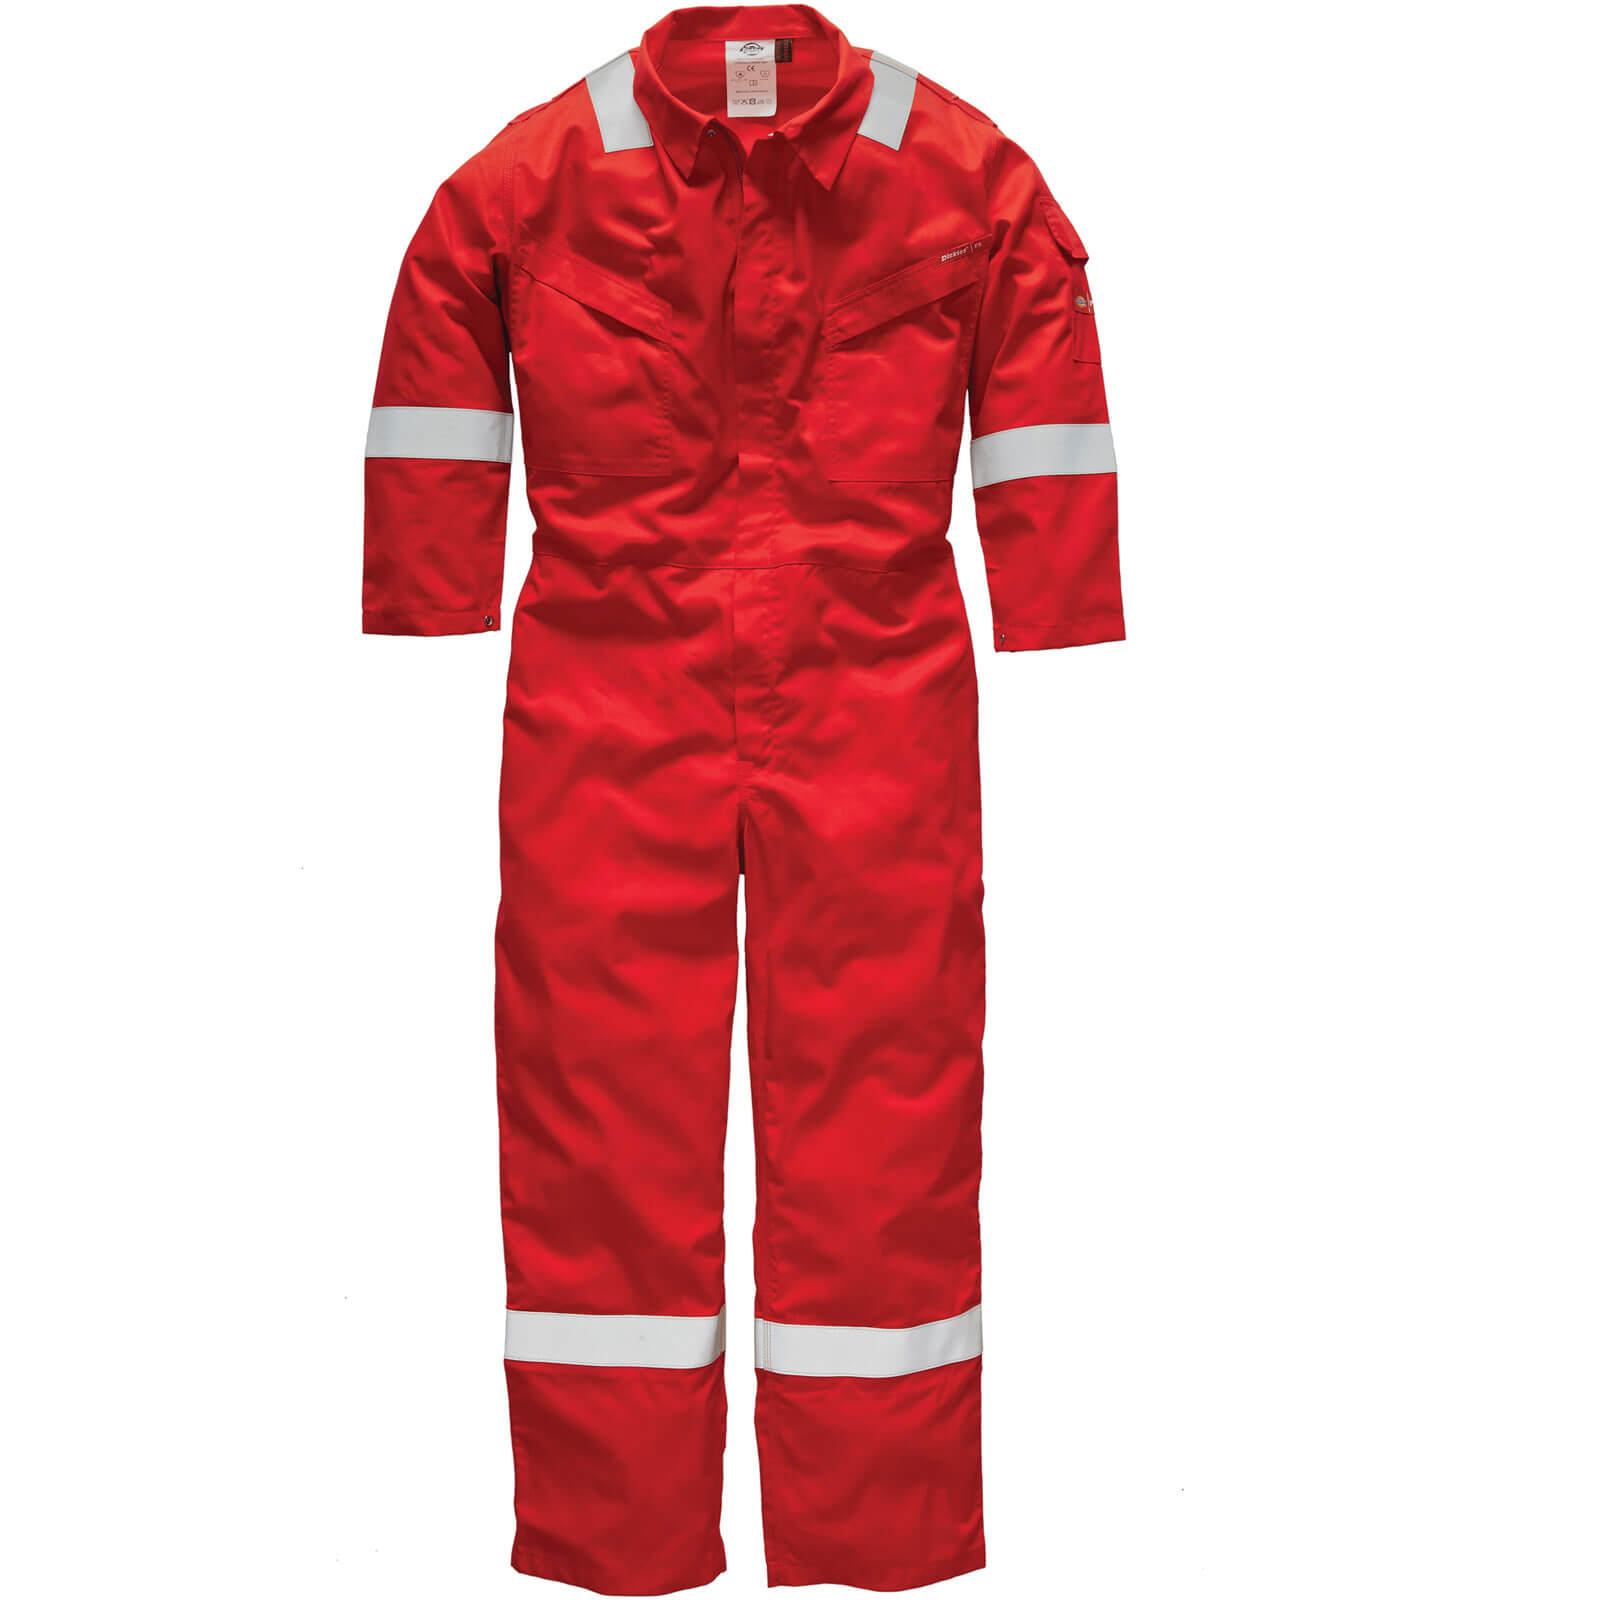 Dickies Mens Pyrovatex Flame Retardant Overalls Red 40